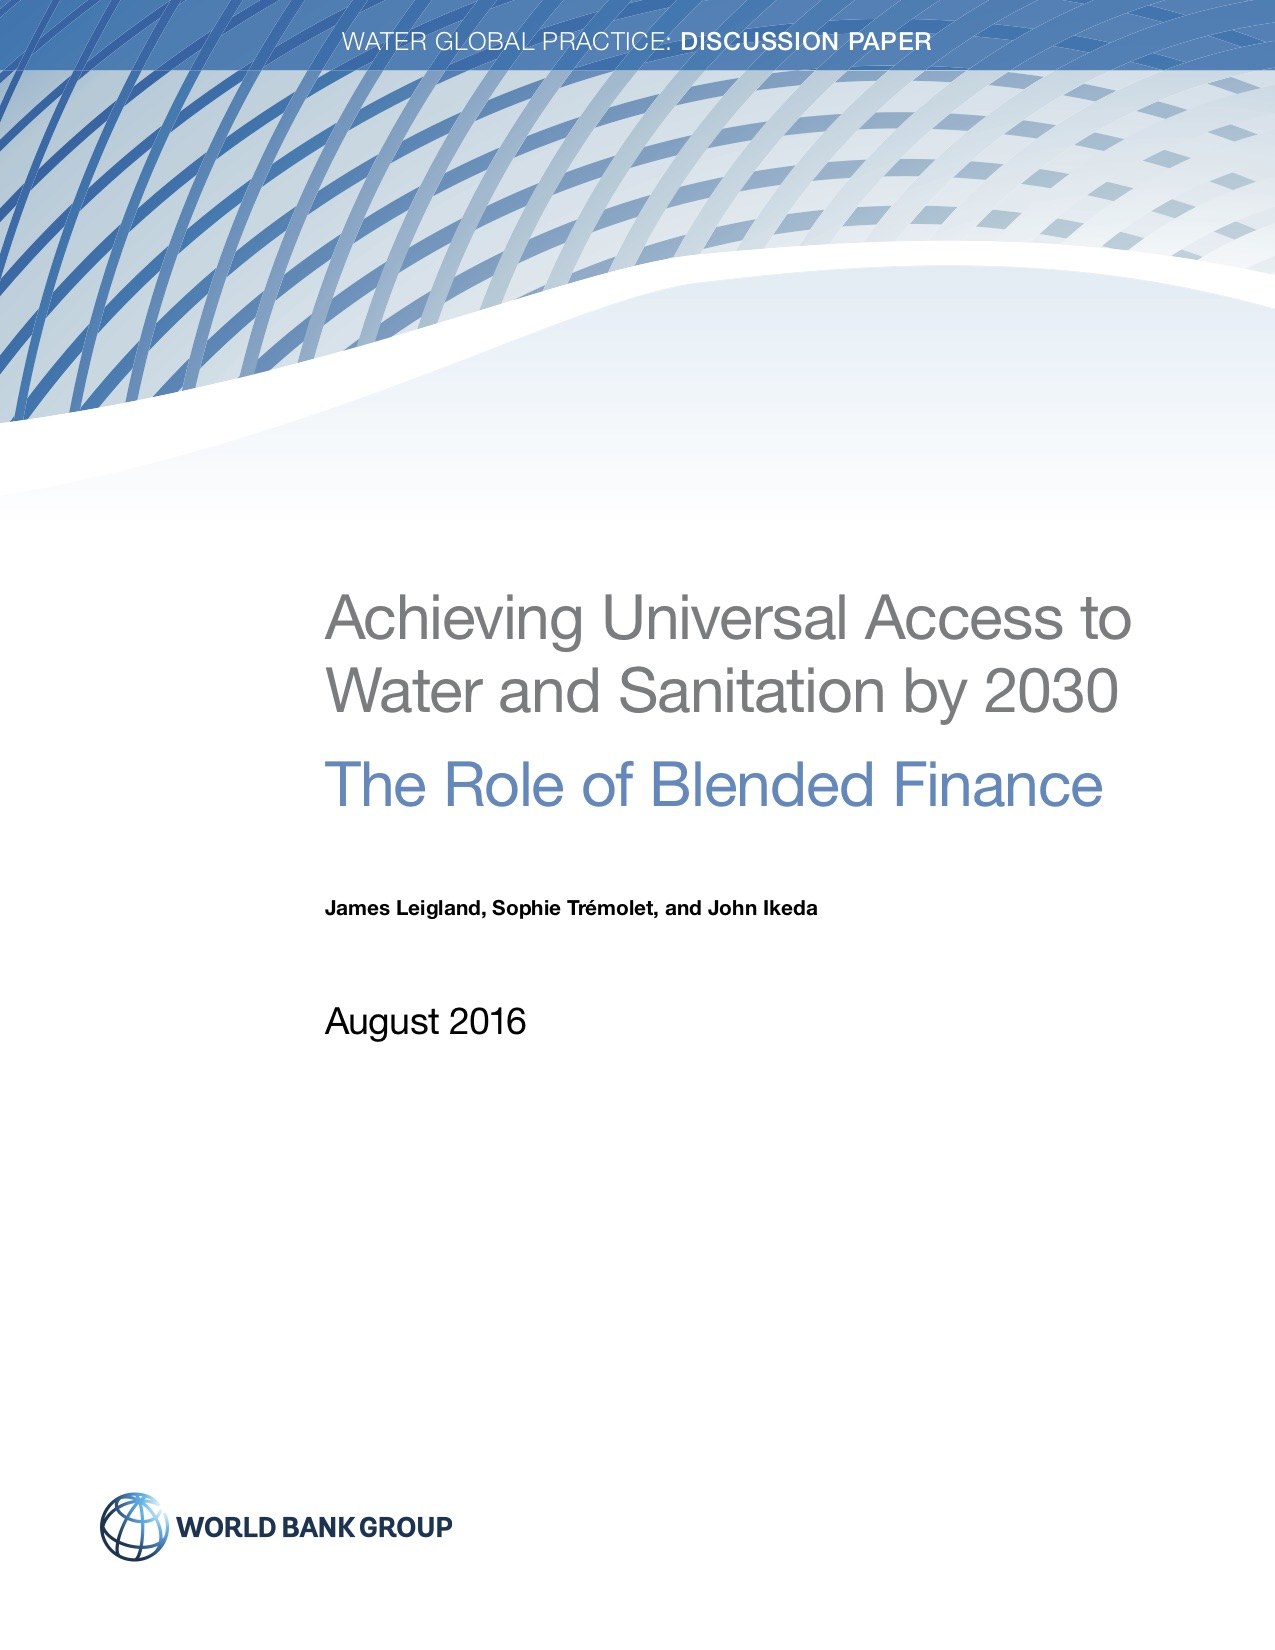 Achieving Universal Access to Water and Sanitation by 2030: The Role of Blended Finance